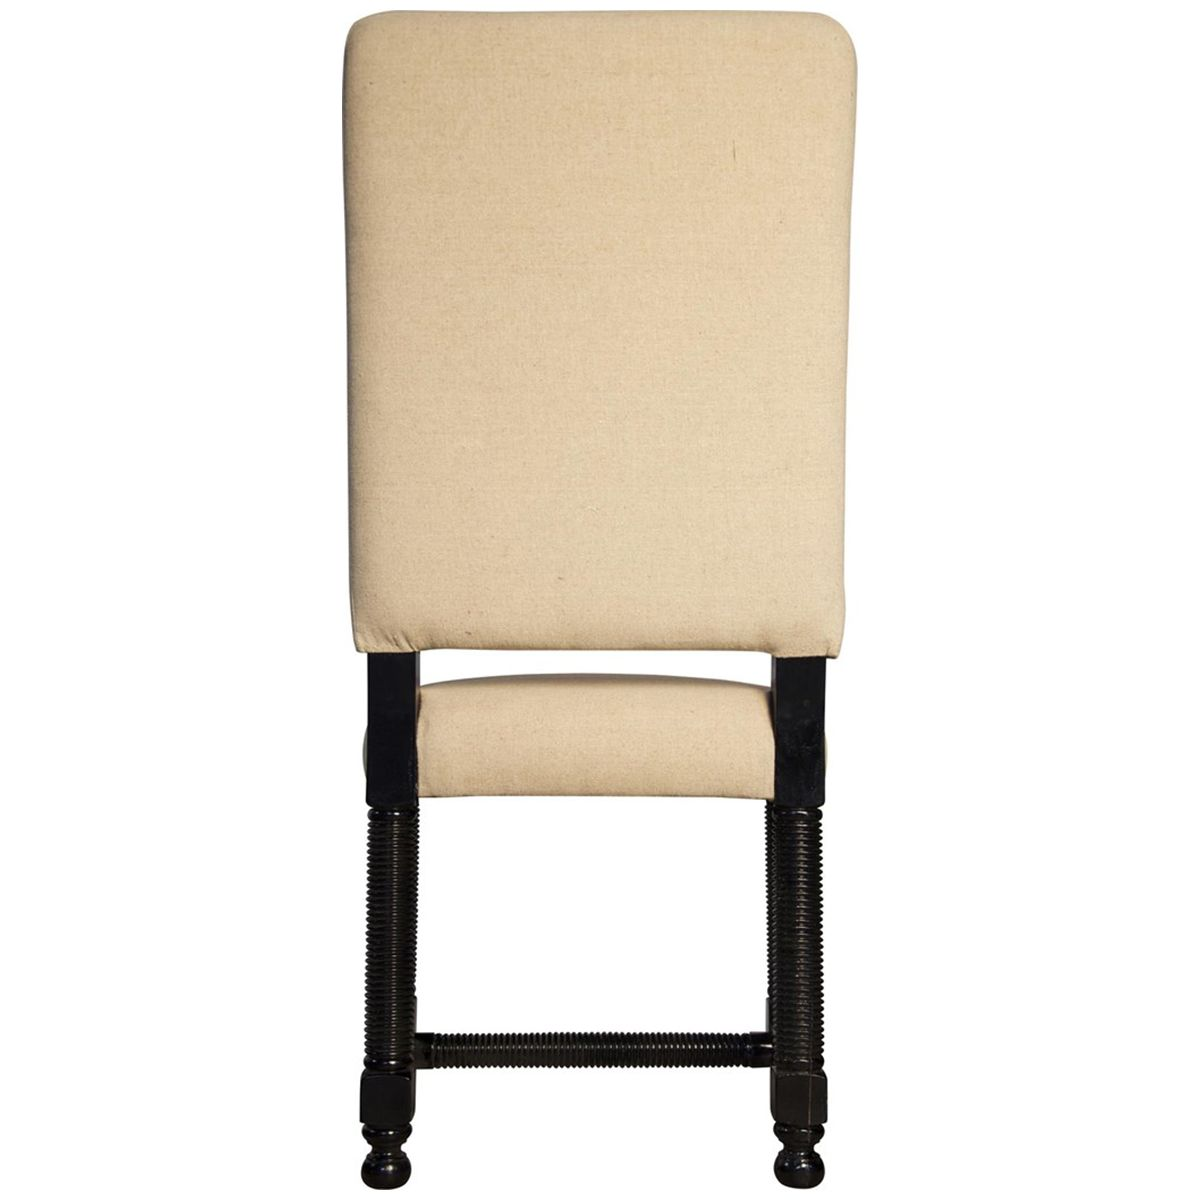 Noir Spanish Chair Distressed Black Gcha115d1 Spanish Chairs Chair Black